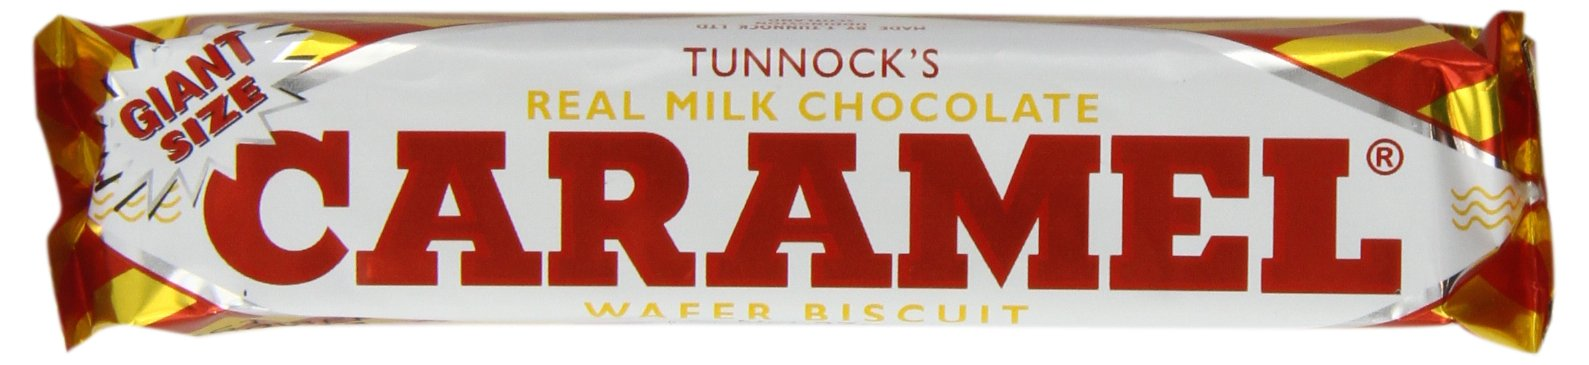 Tunnock's Real Milk Chocolate Caramel Wafer Biscuits 37 g (Pack of 36)